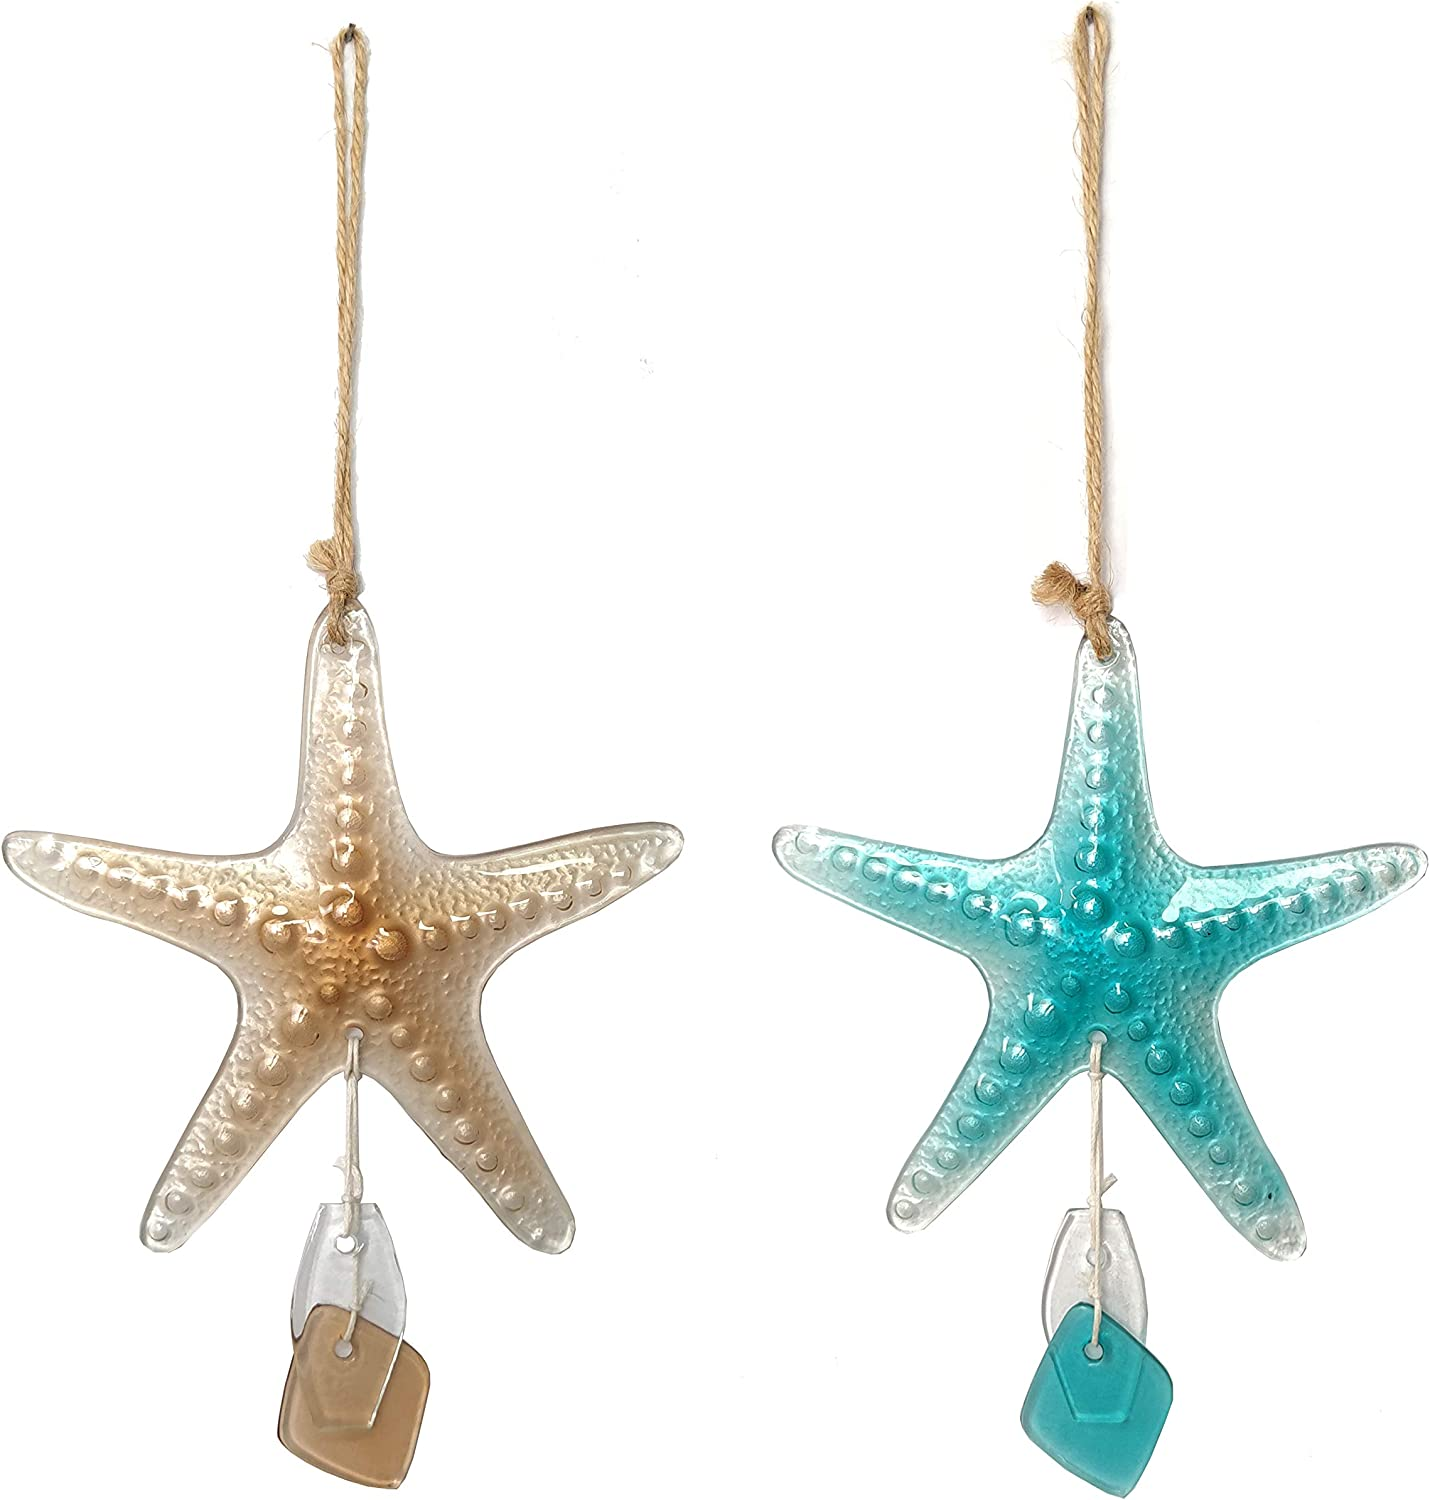 JOYBee Sea Glass Starfish Hanging Ornaments-Wall Art Decor-Christmas Tree Décor,Set of 2, Sea Life Nautical Home Decor, Recycled Wall Art 12Inch5.8Inche, Haitian, Decorative,